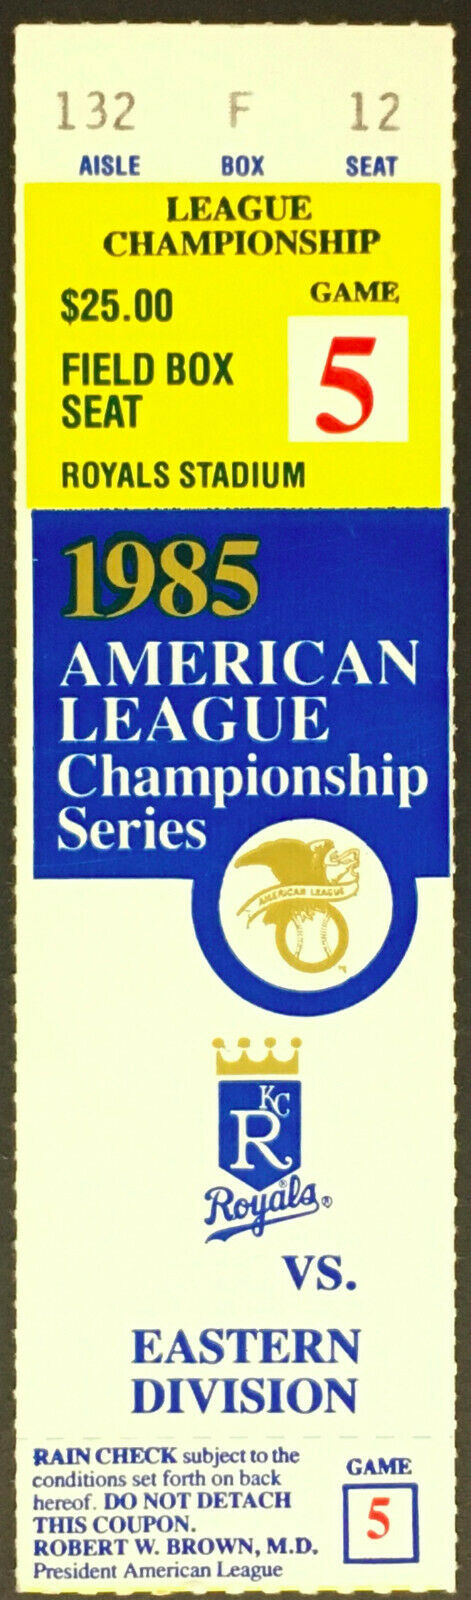 1985 ALCS Championship Series MLB Game 5 Ticket Kansas City Royals vs Blue Jays